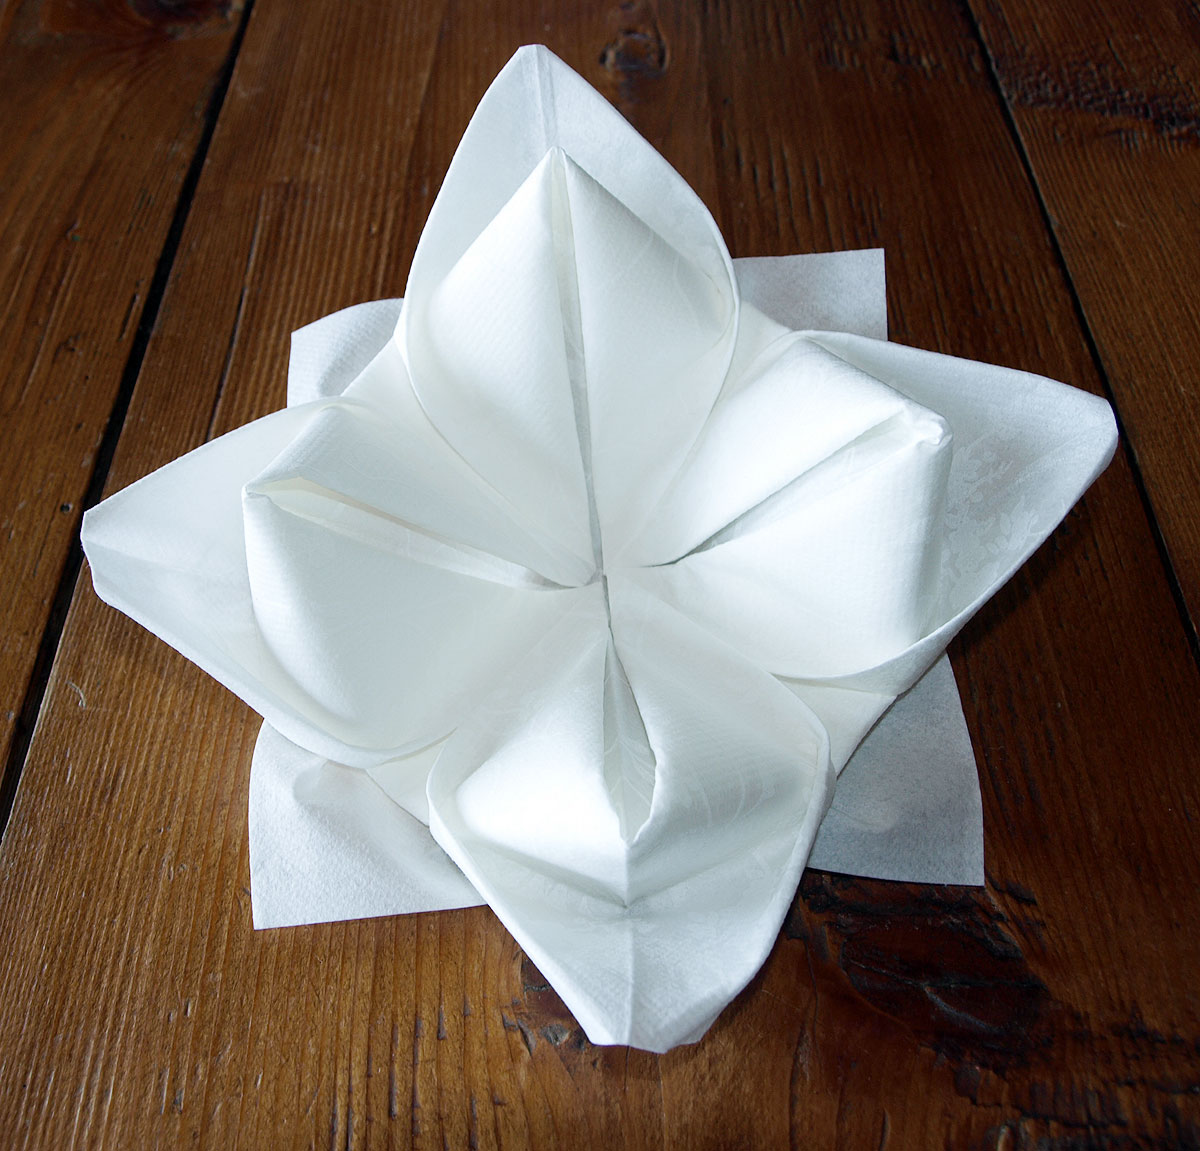 Pliage de serviette de table - Origami serviette de table ...